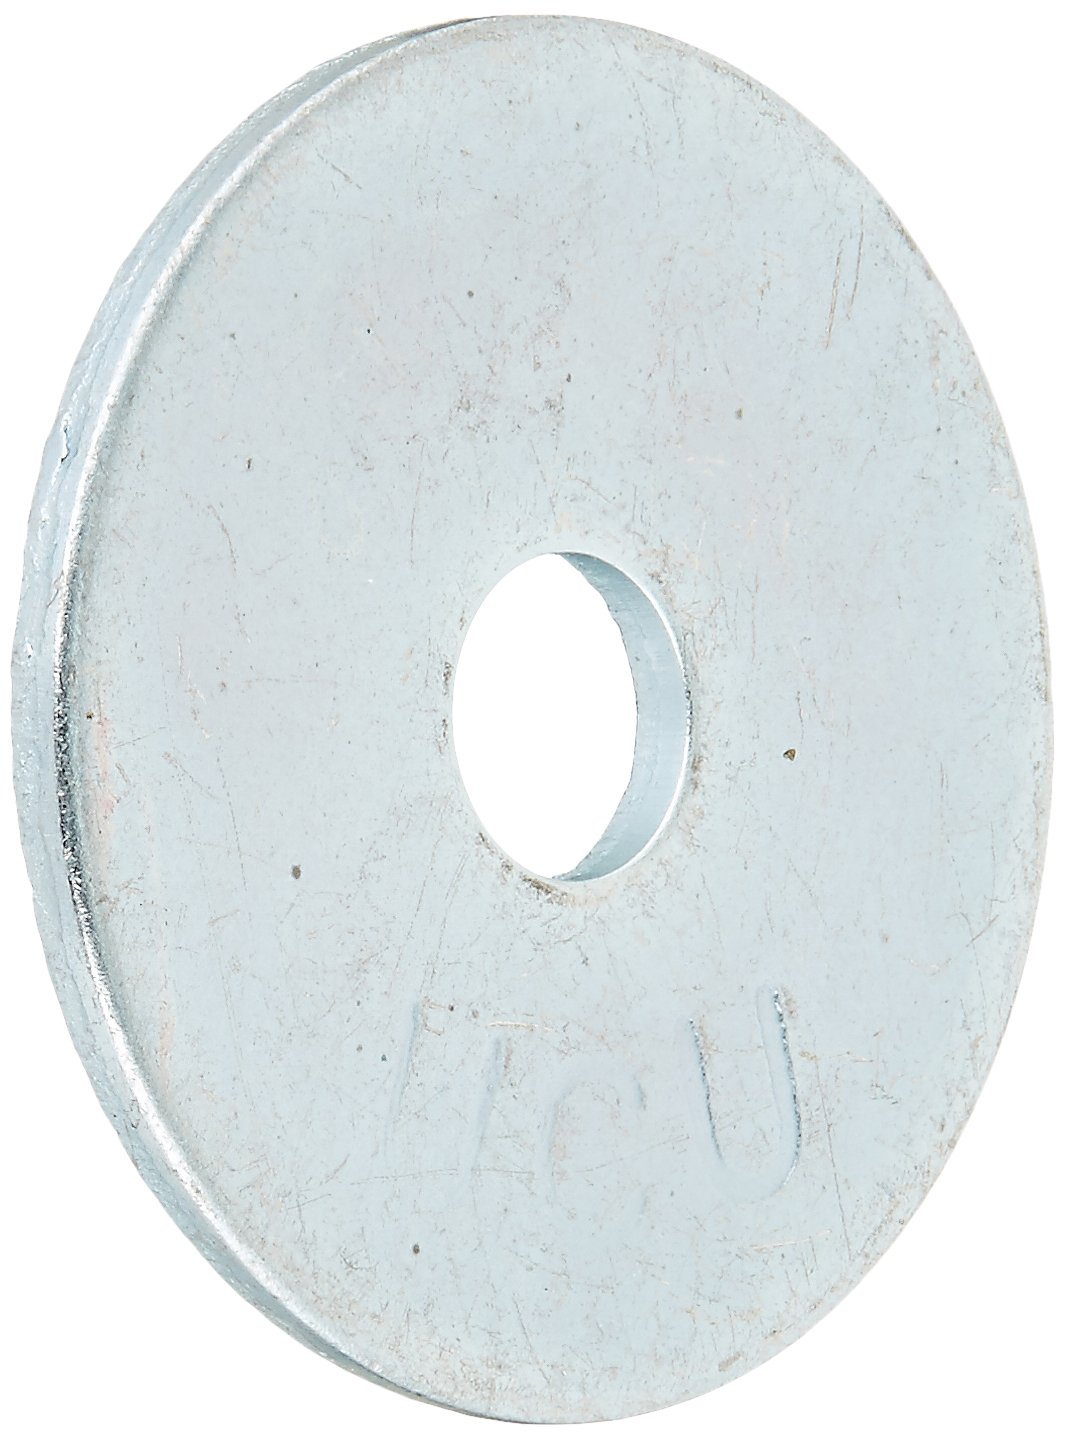 The Hillman Group 290003 Fender Zinc Washers, 3/16-Inch x 1-Inch, 100-Pack